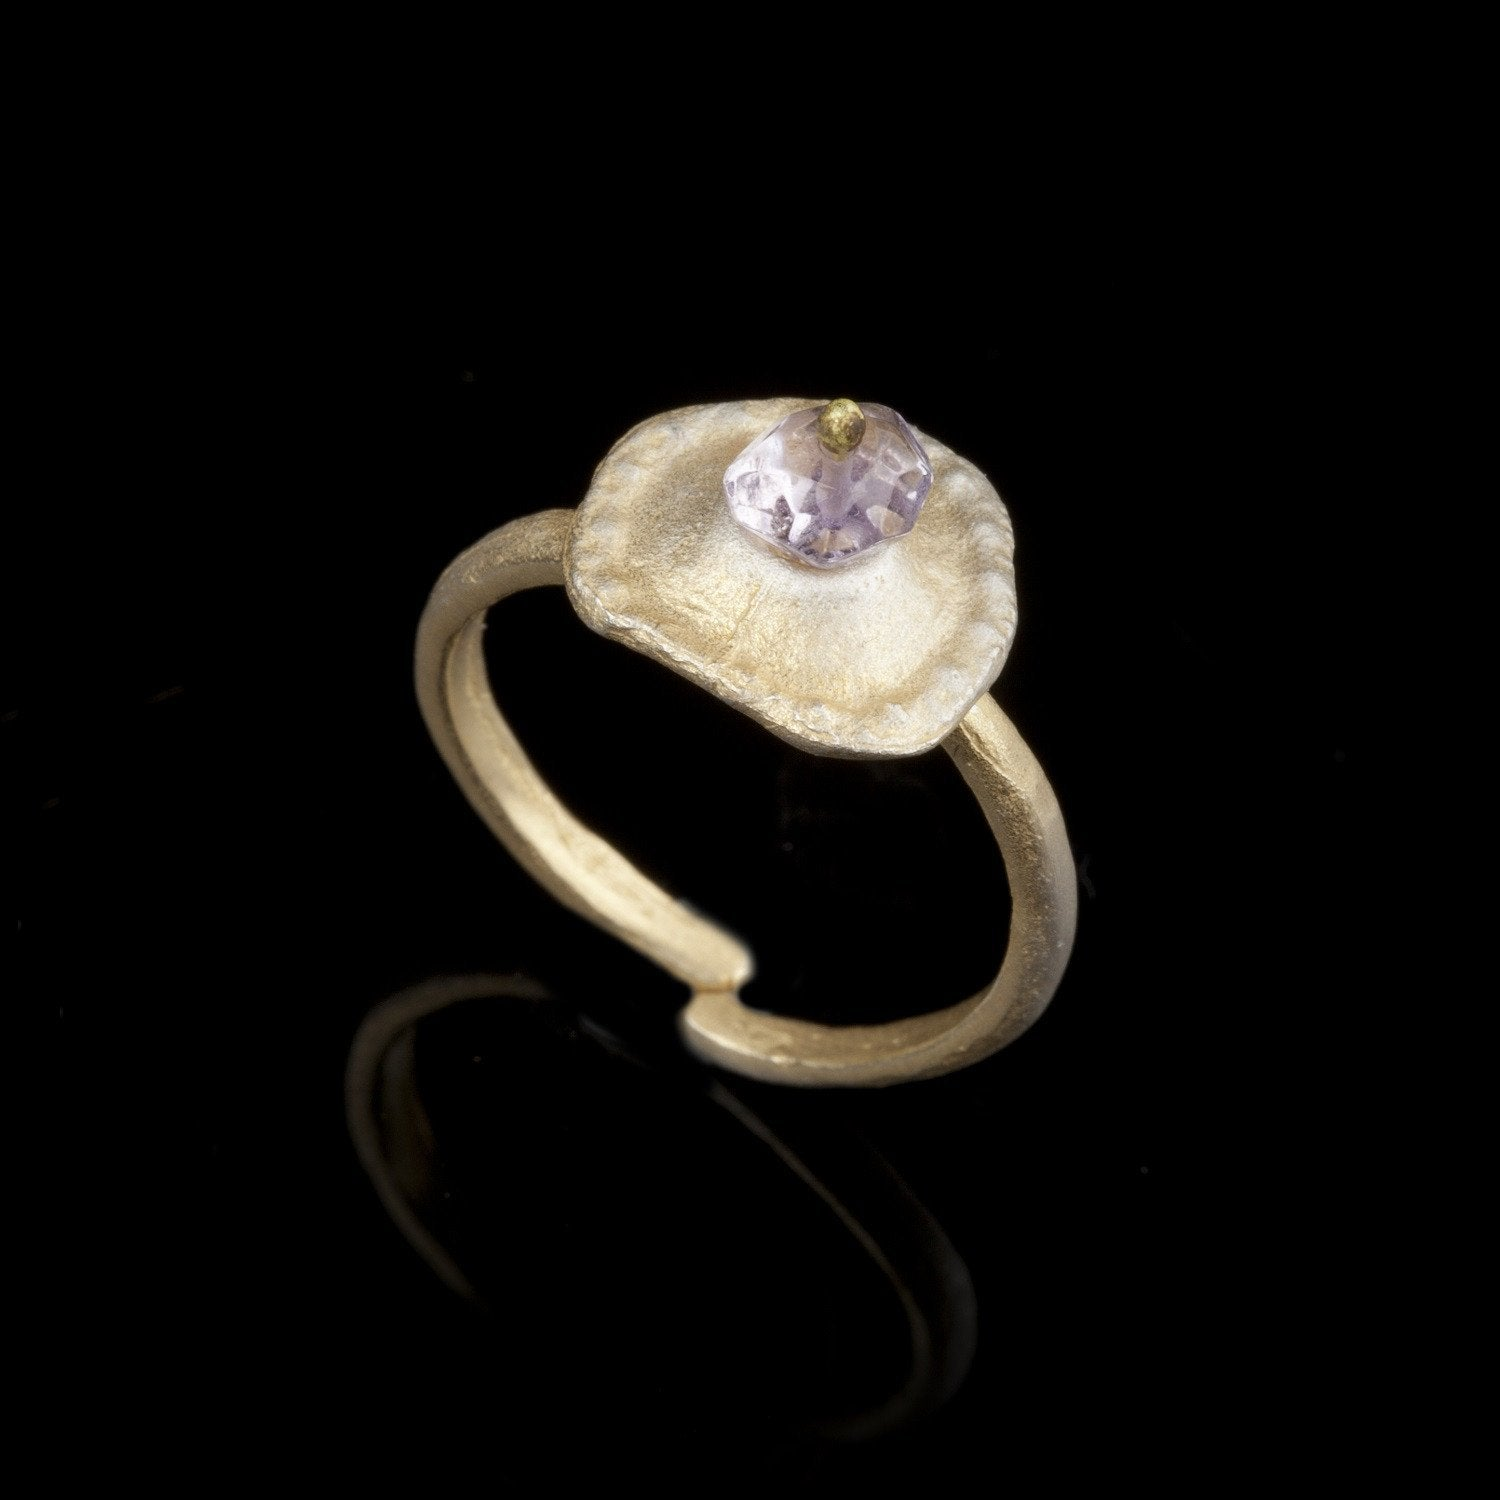 Sea Urchin Single Ring - Amethyst